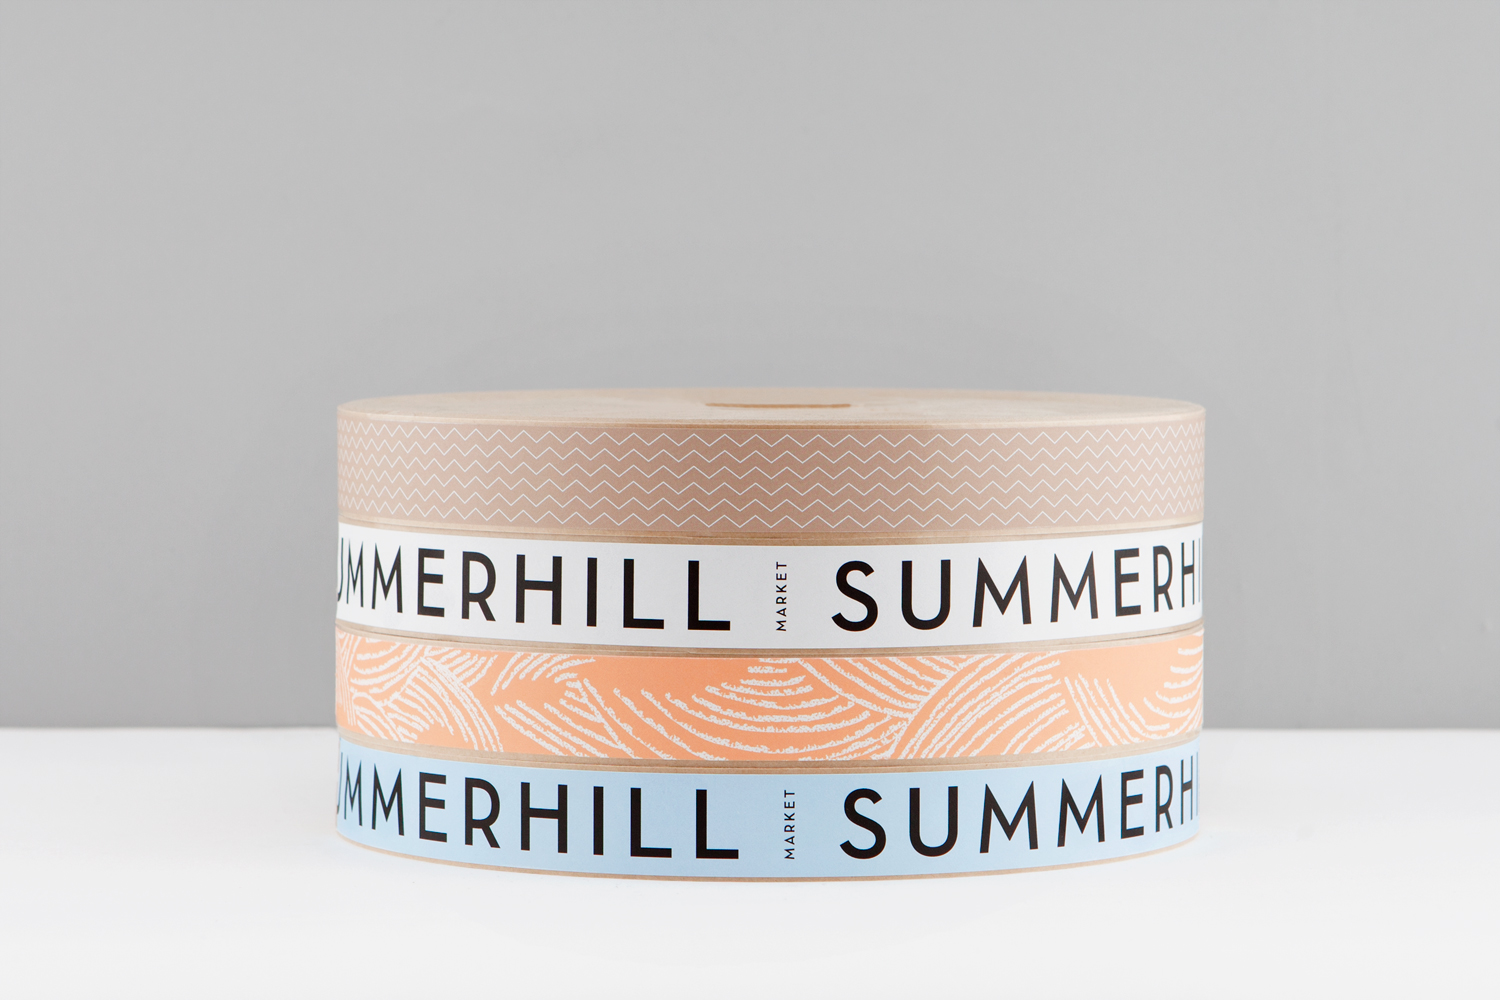 Branded adhesive tape designed by Canadian studio Blok for Toronto based boutique grocery store Summerhill Market